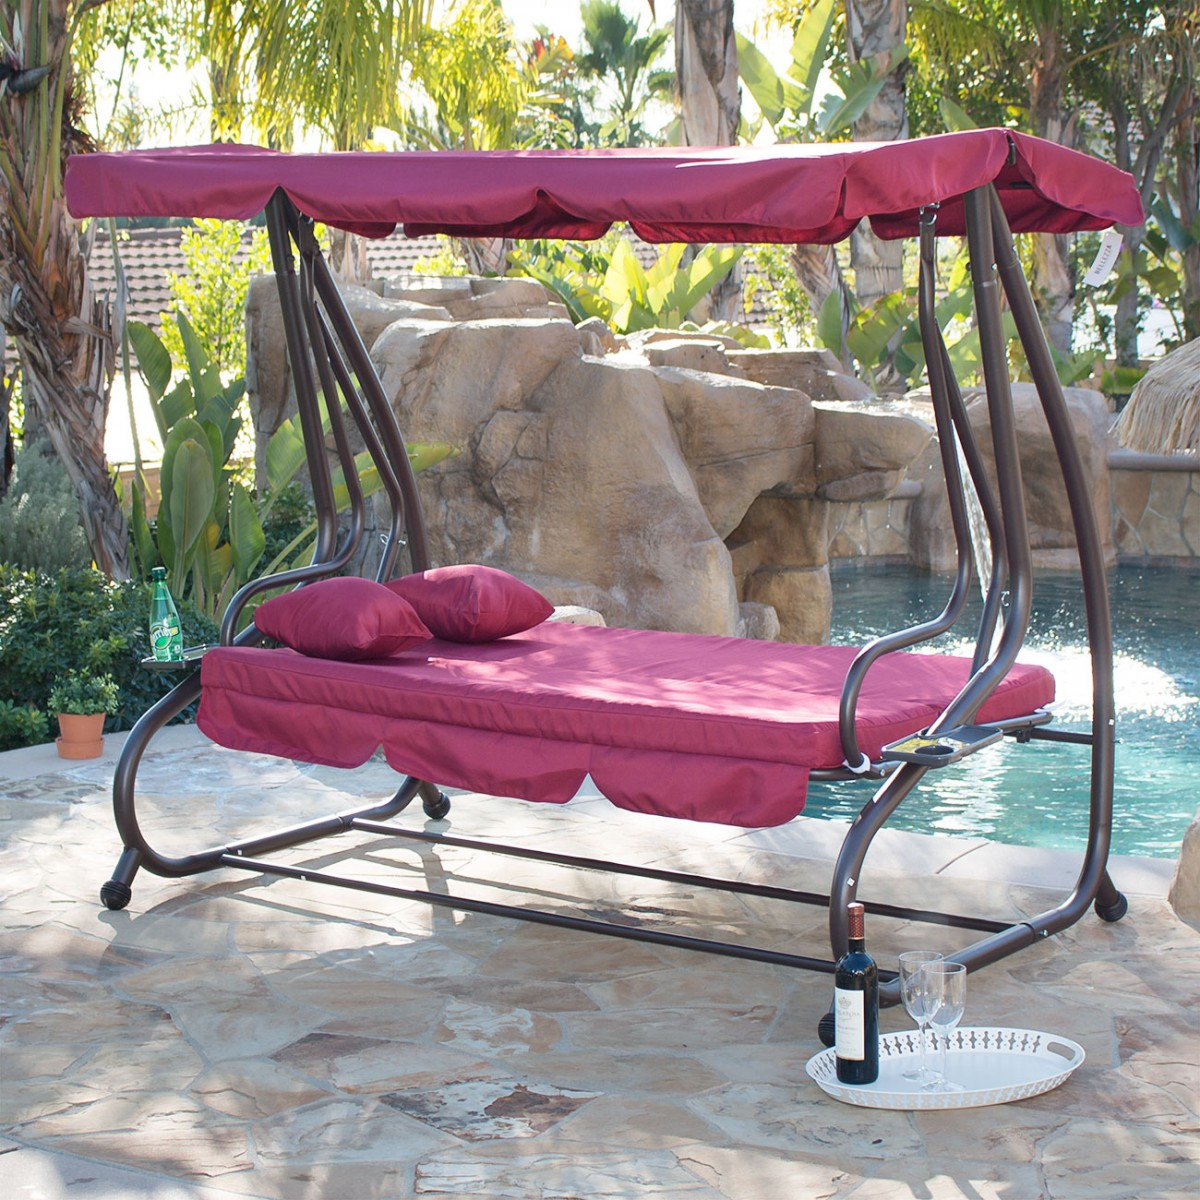 Belleze Outdoor Canopy Porch Swing/bed Hammock Tilt Canopy With Steel Frame (Burgundy) Within Porch Swings With Canopy (View 6 of 25)